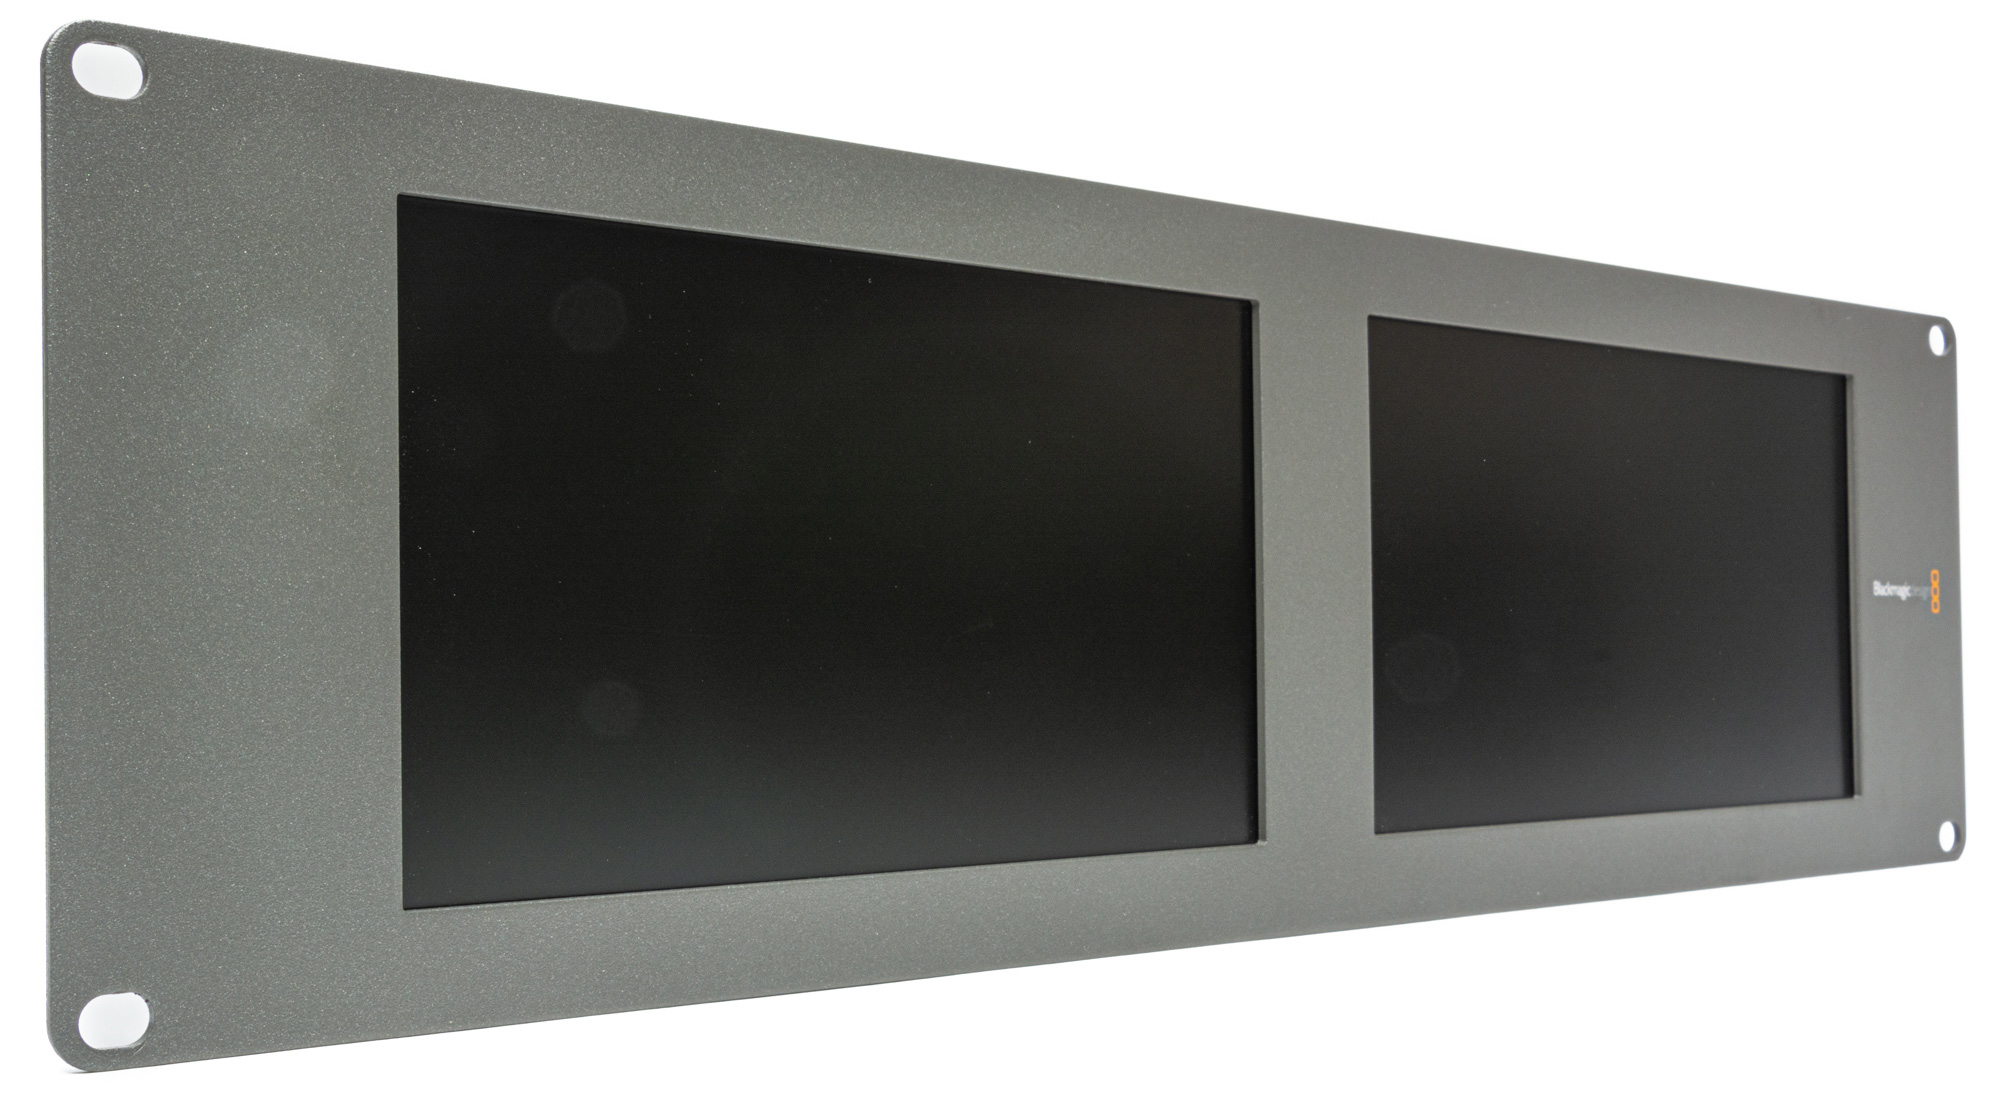 Blackmagic Hdl Smtvduo2 Smartview Duo2 Dual 8 Inch Intelligent Sdi Rack Monitors Bstock Used Missing Accessories